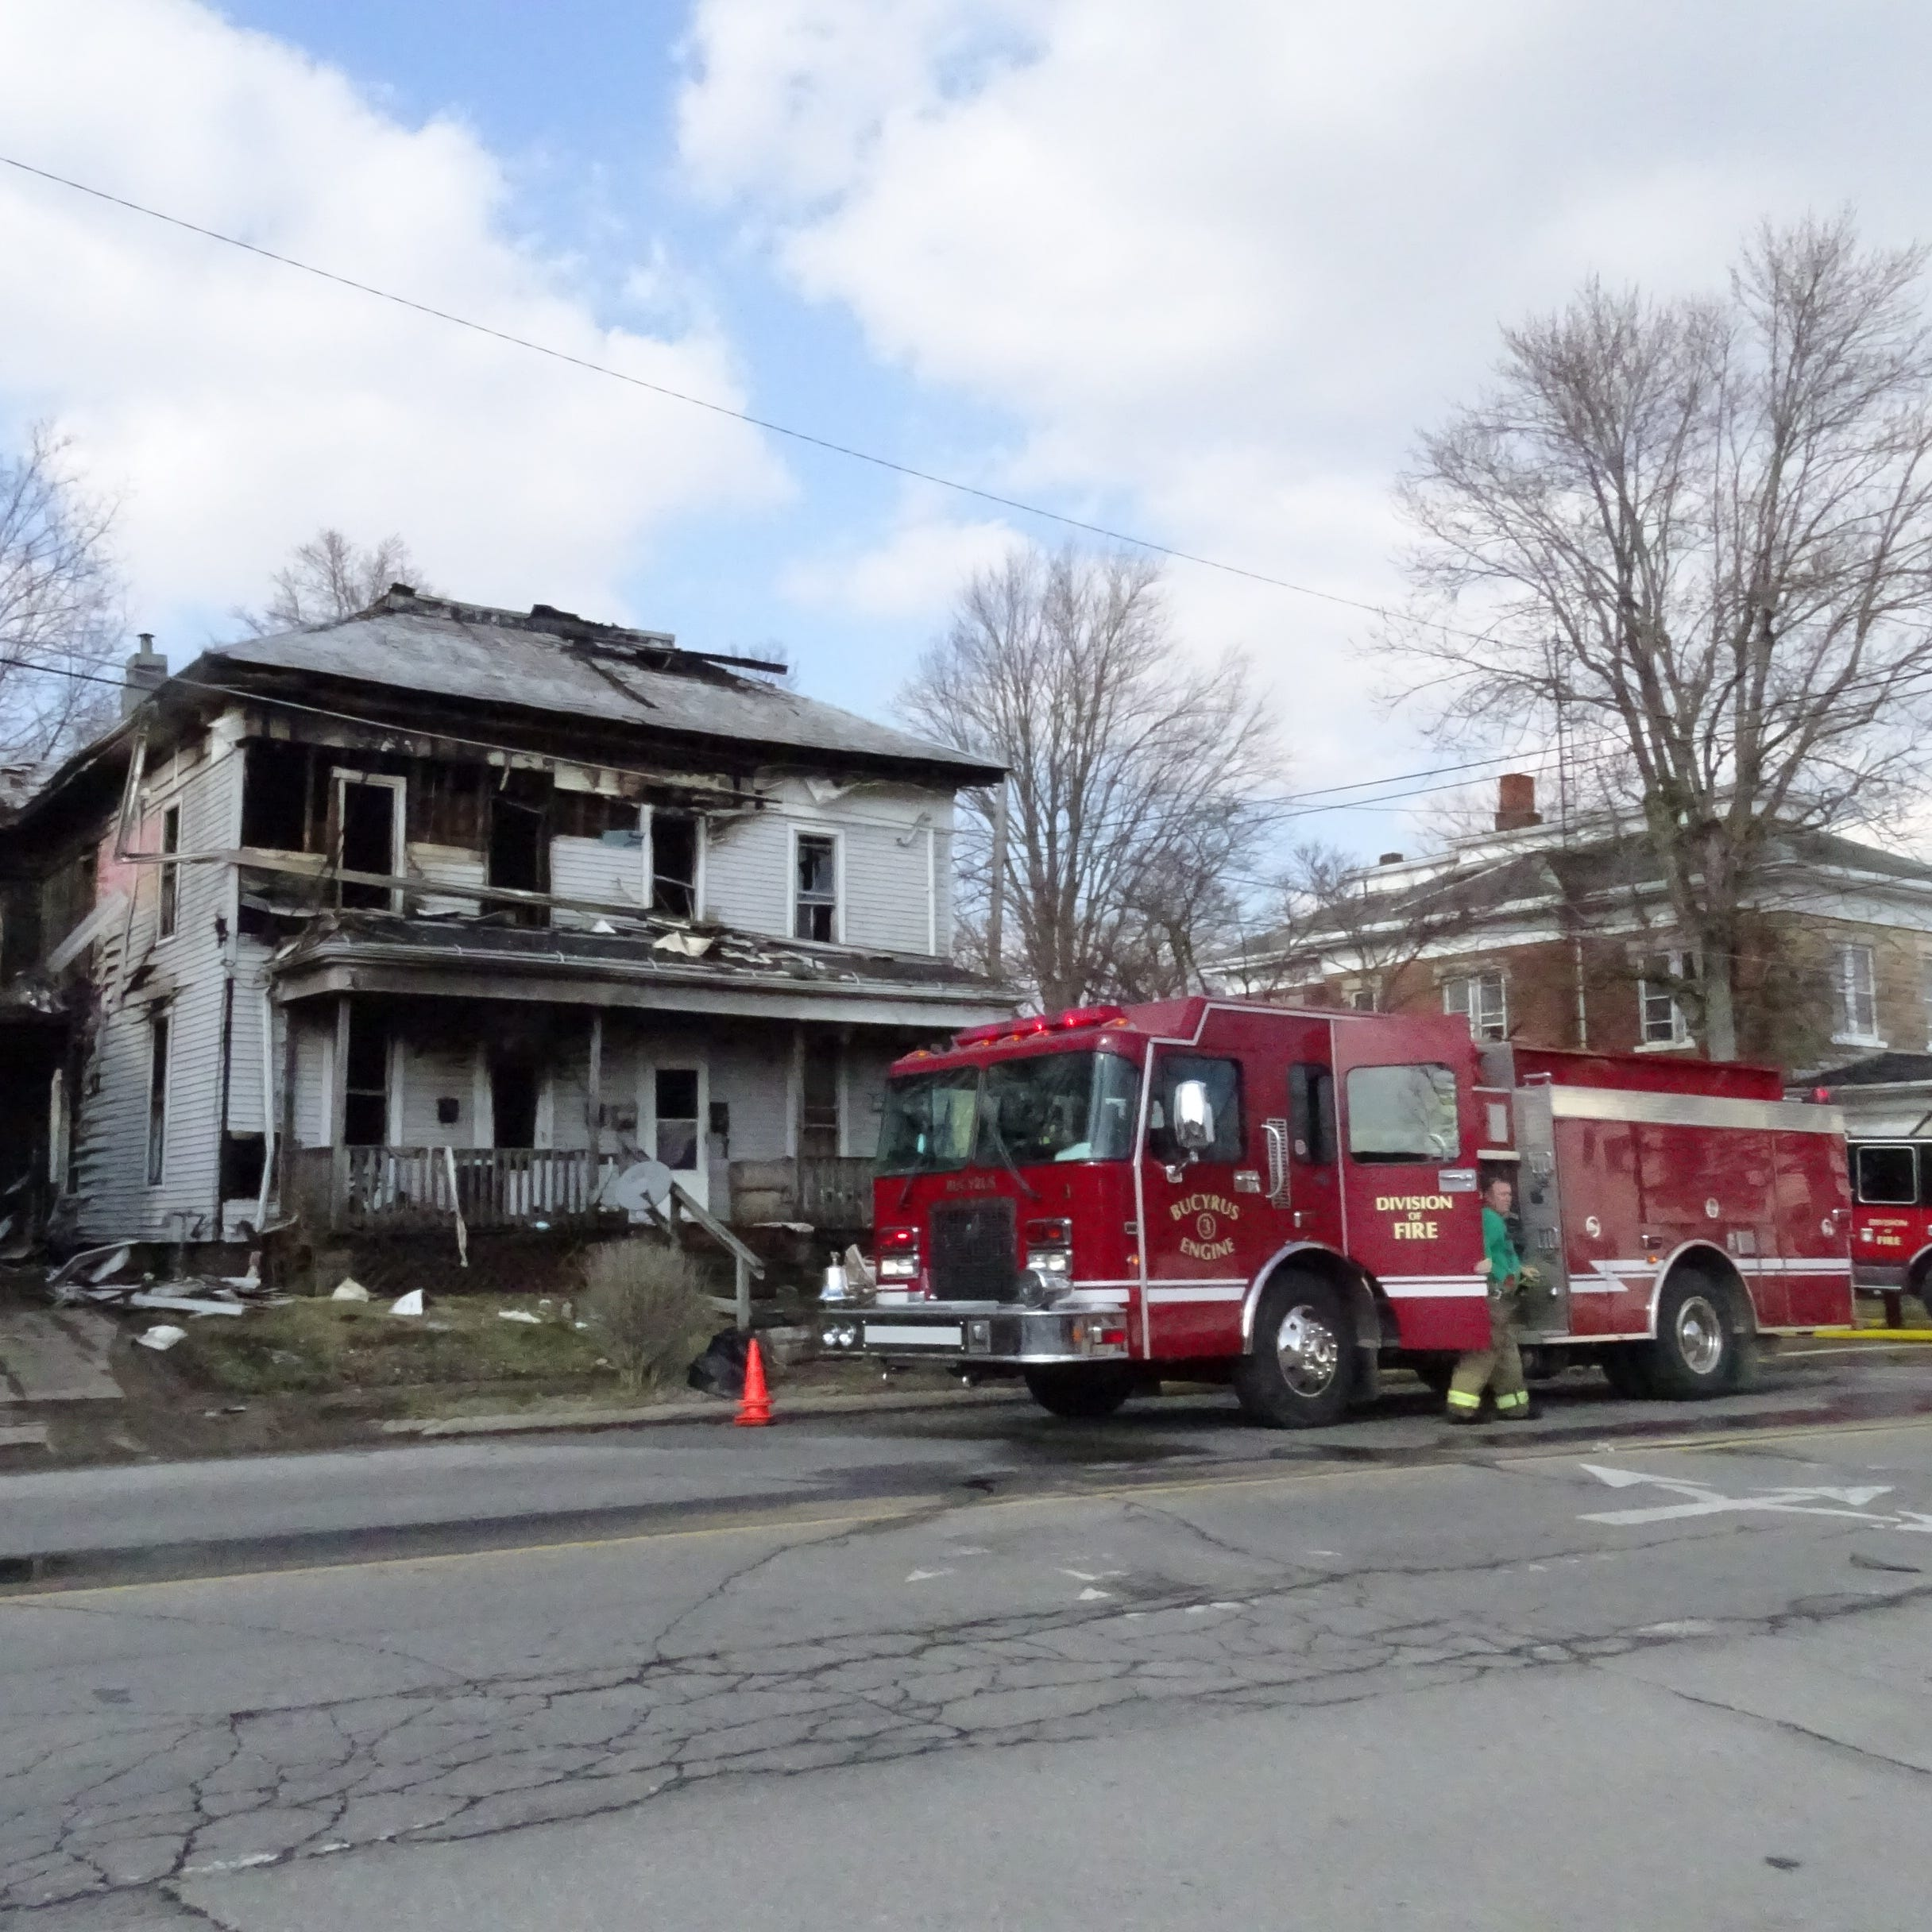 Suspect in apartment fire indicted; competency evaluation ordered